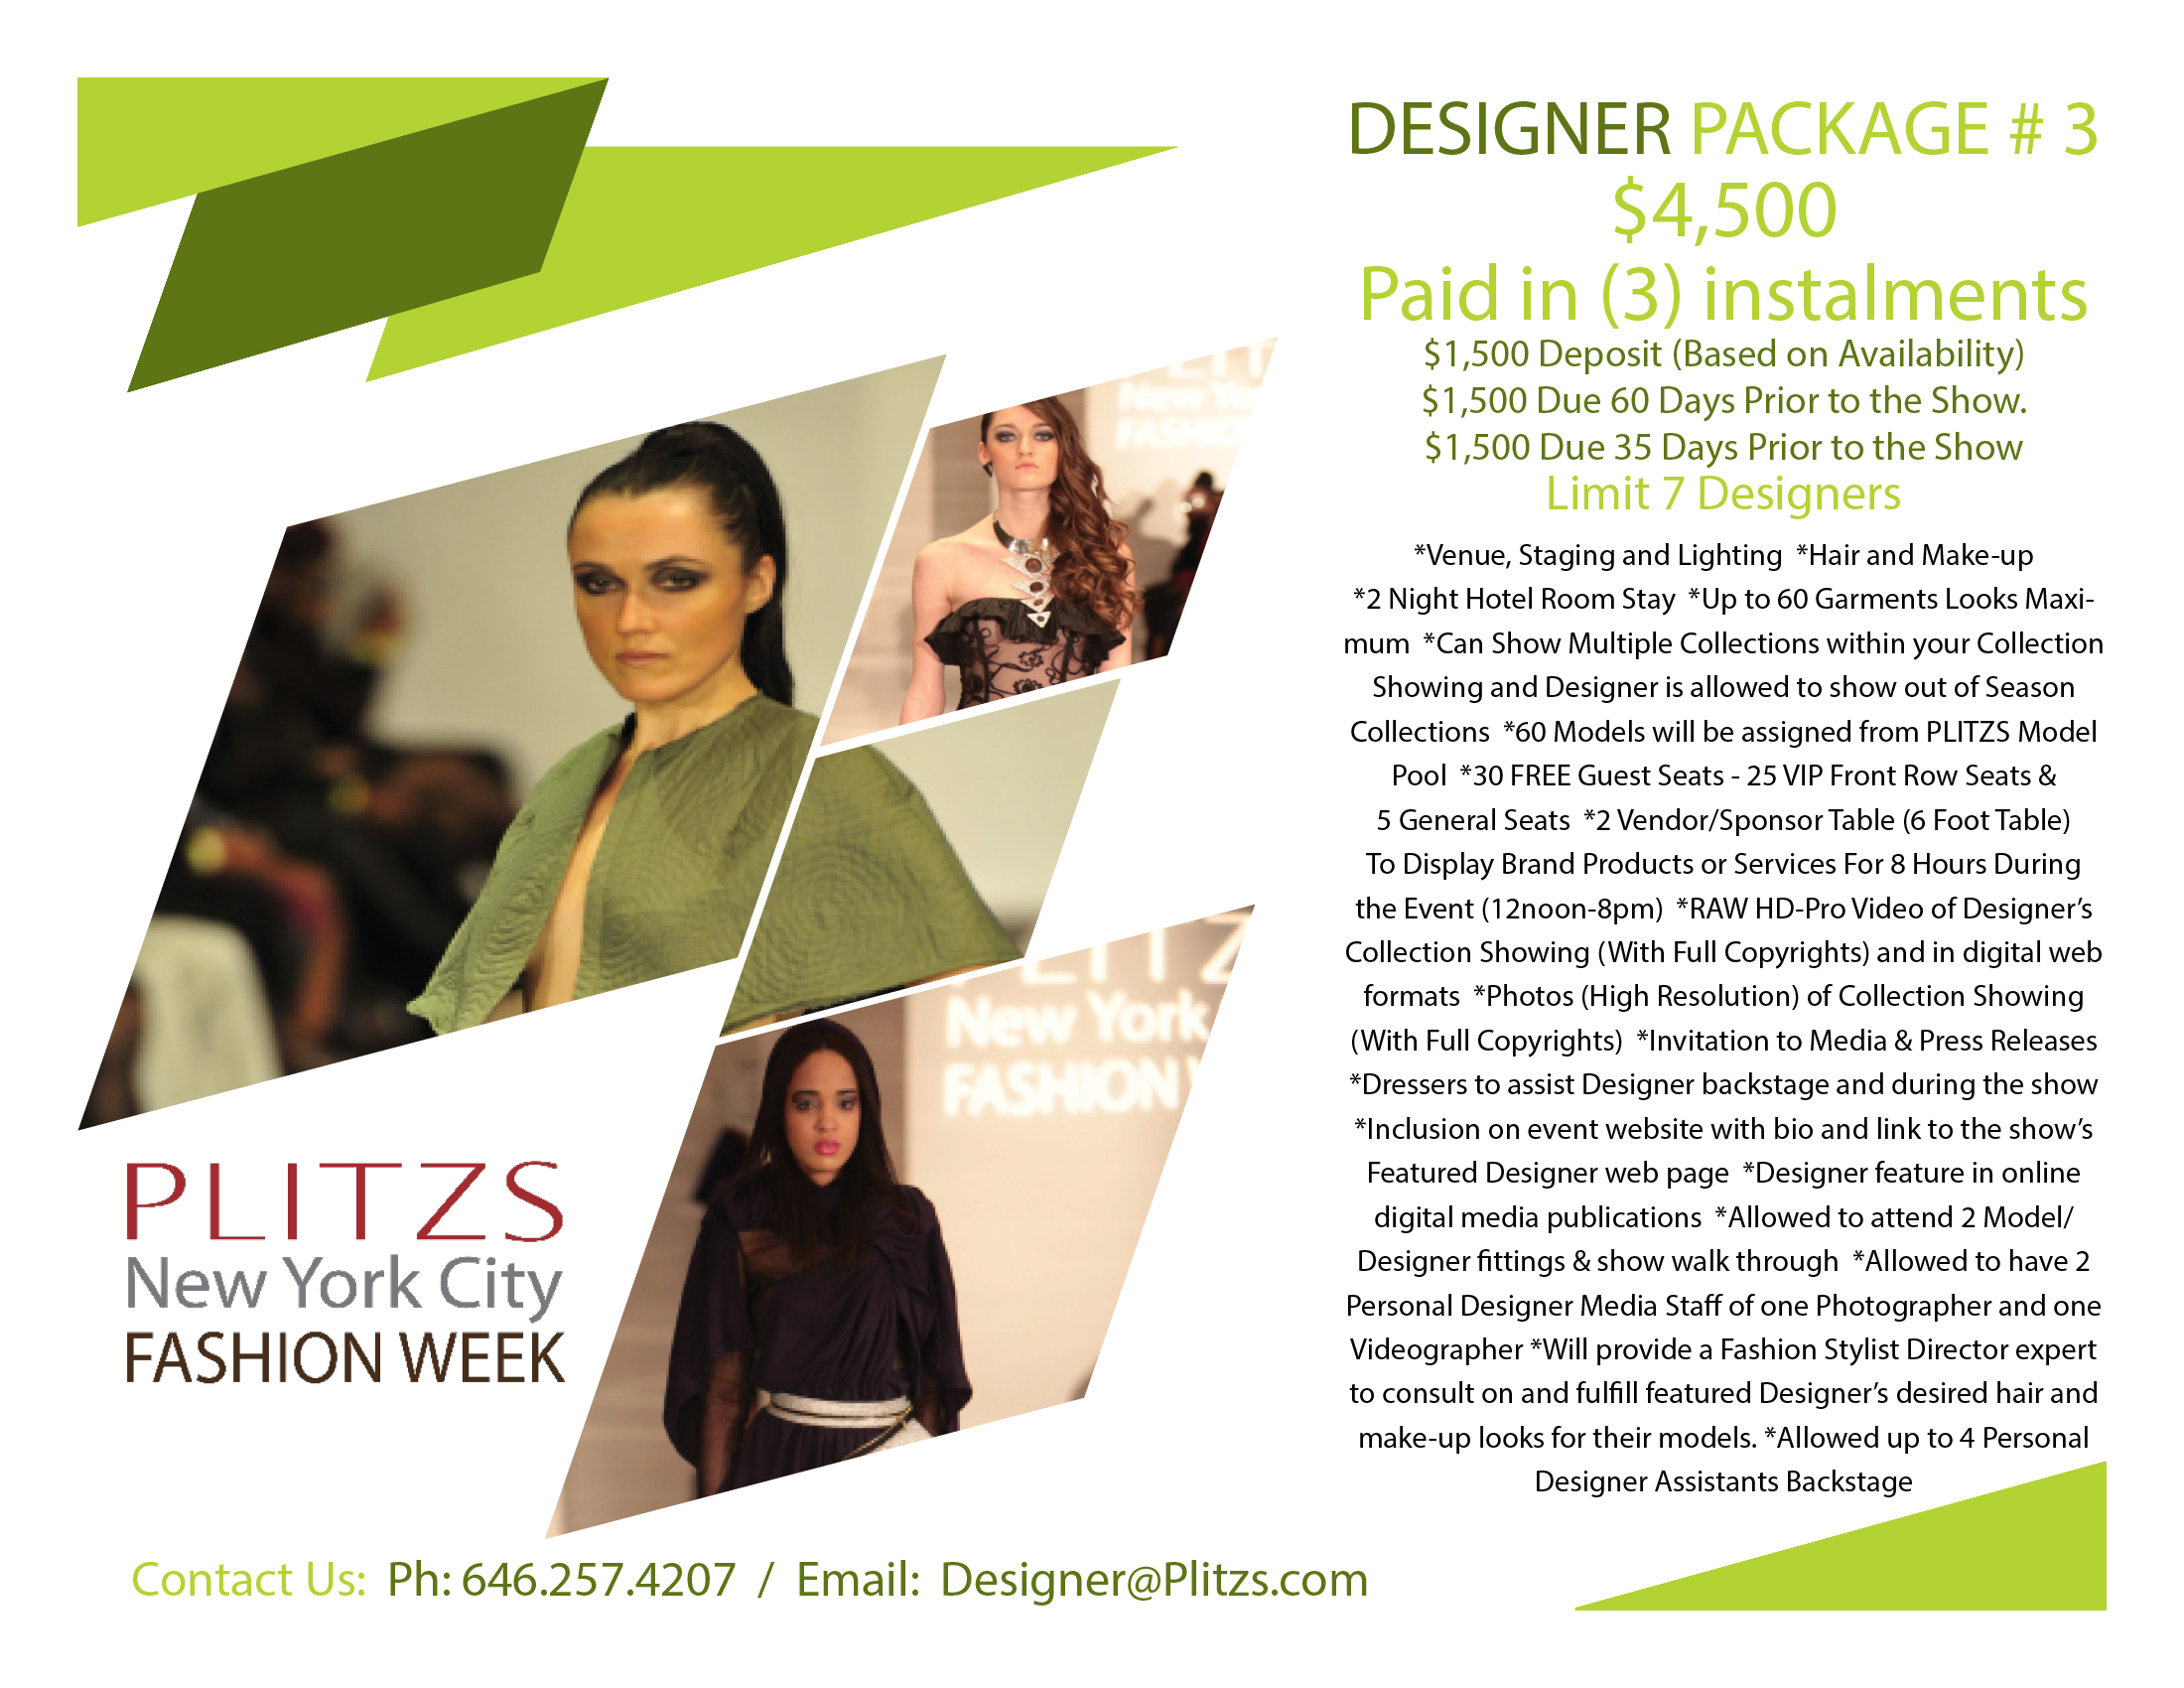 Designer Package 3 Payments Are Final And Non Refundable And Non Transferable Plitzs New York City Fashion Week